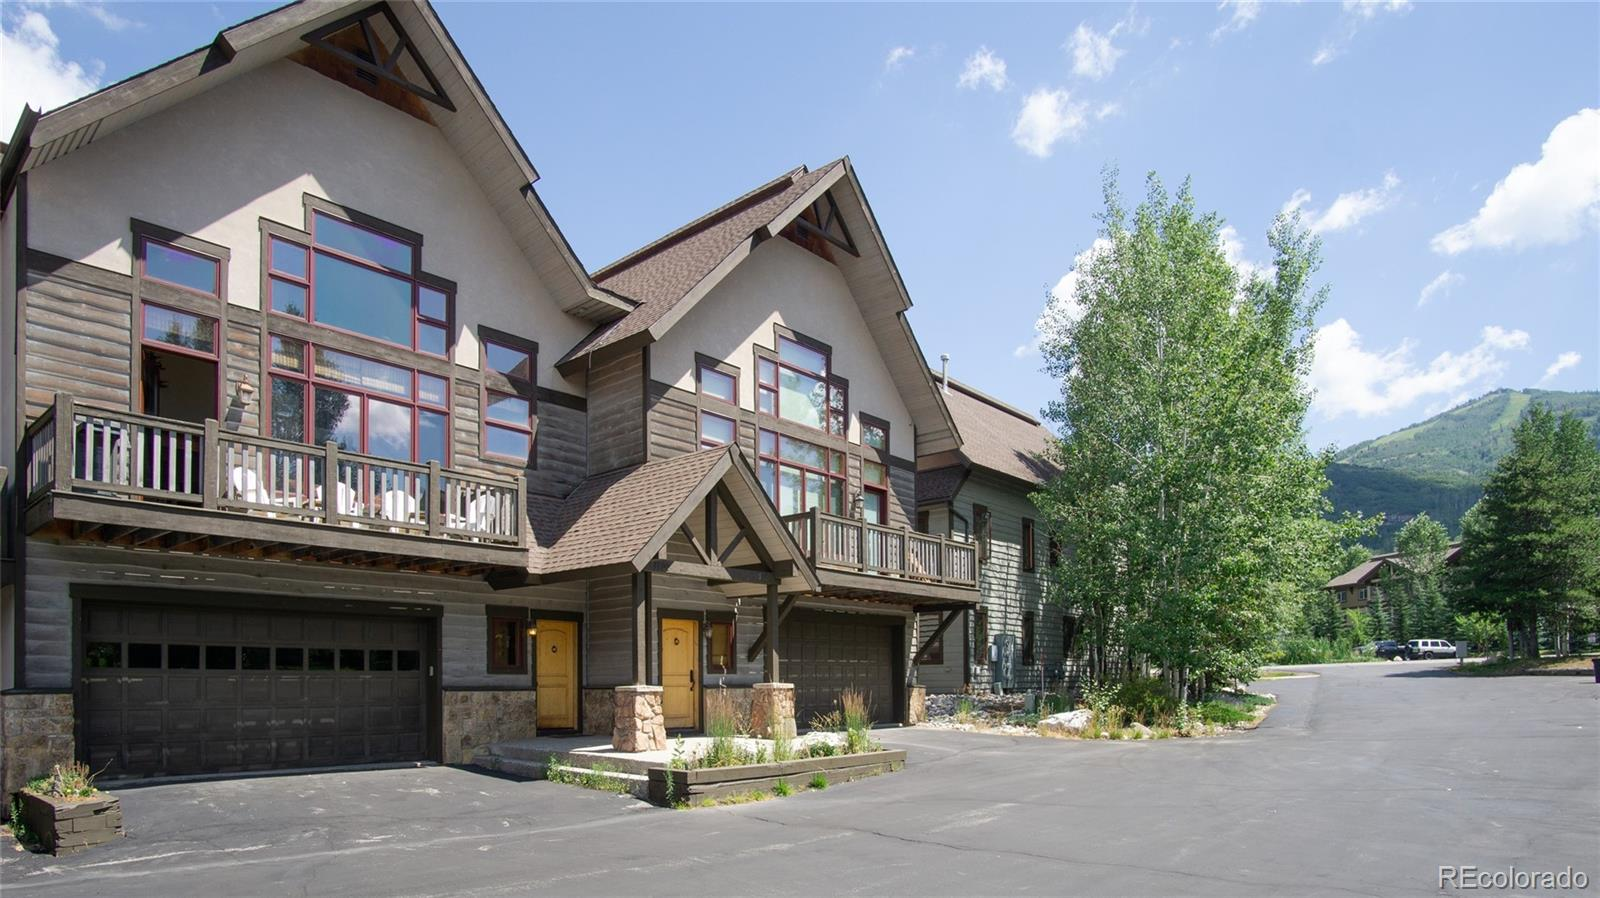 1700 Alpine Vista Court #4, Steamboat Springs, CO 80487 - Steamboat Springs, CO real estate listing